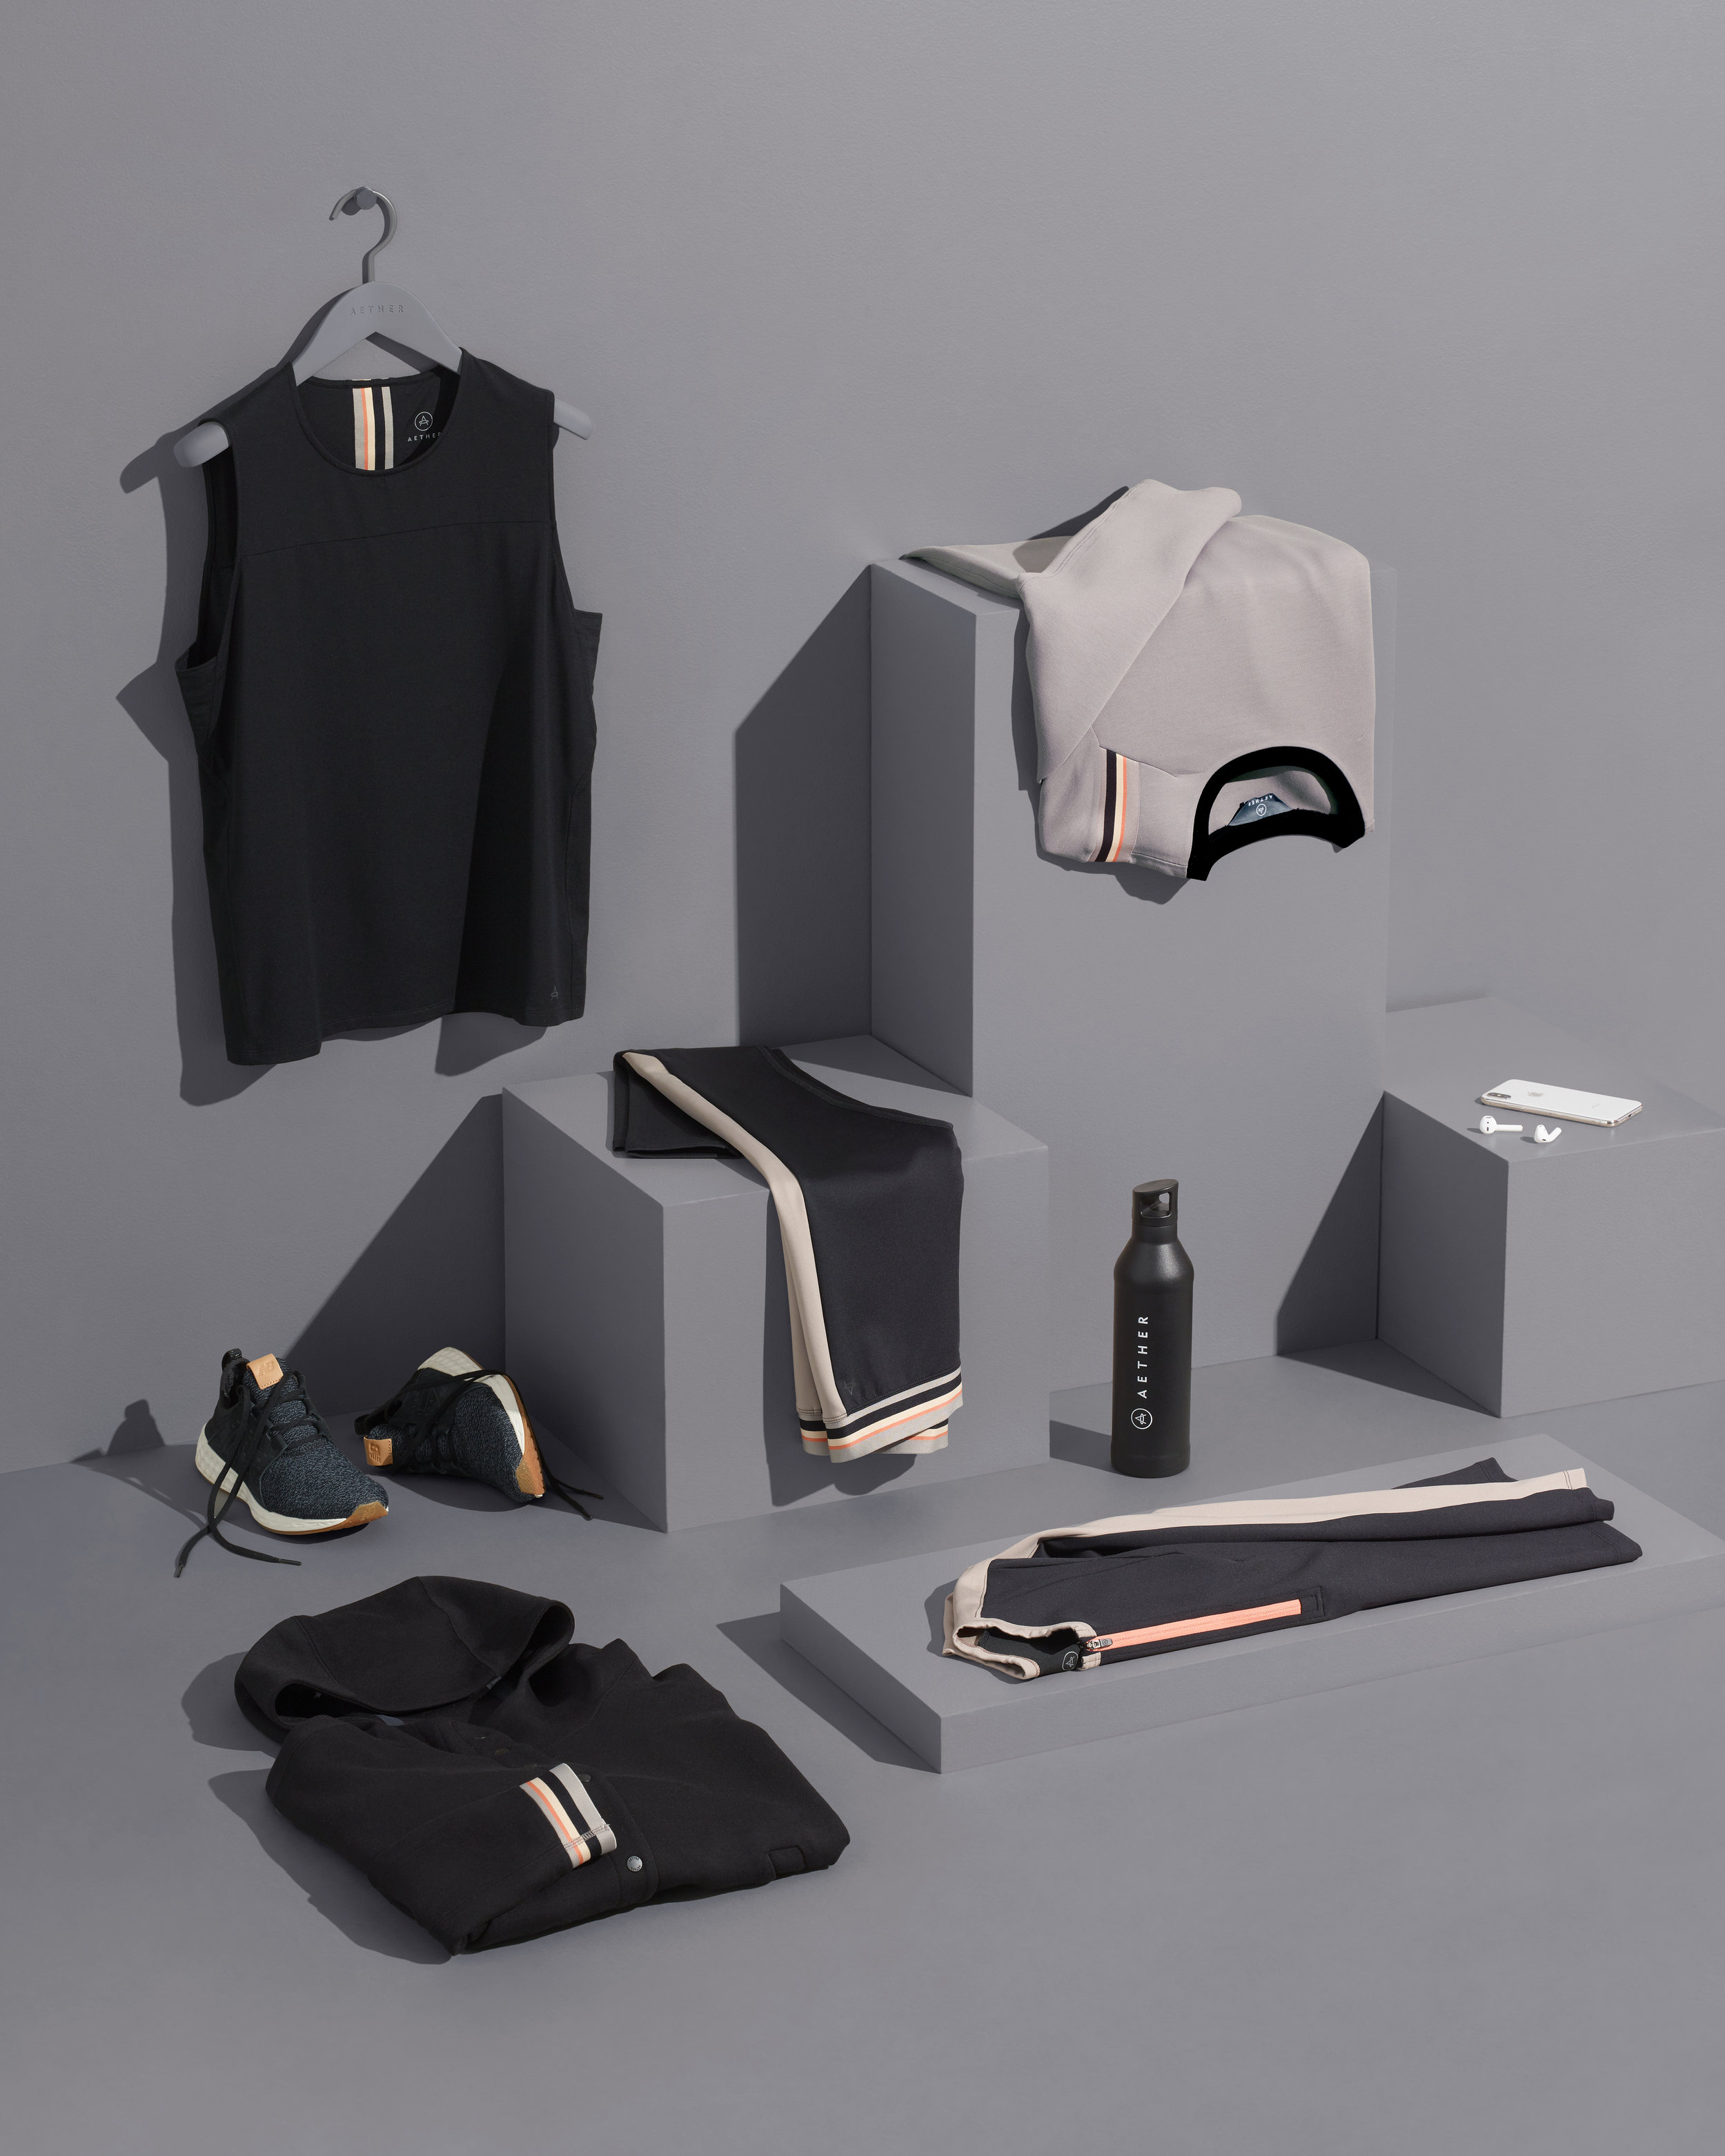 aether_ss19_womens_active_collection_0204_work3_crop.jpg